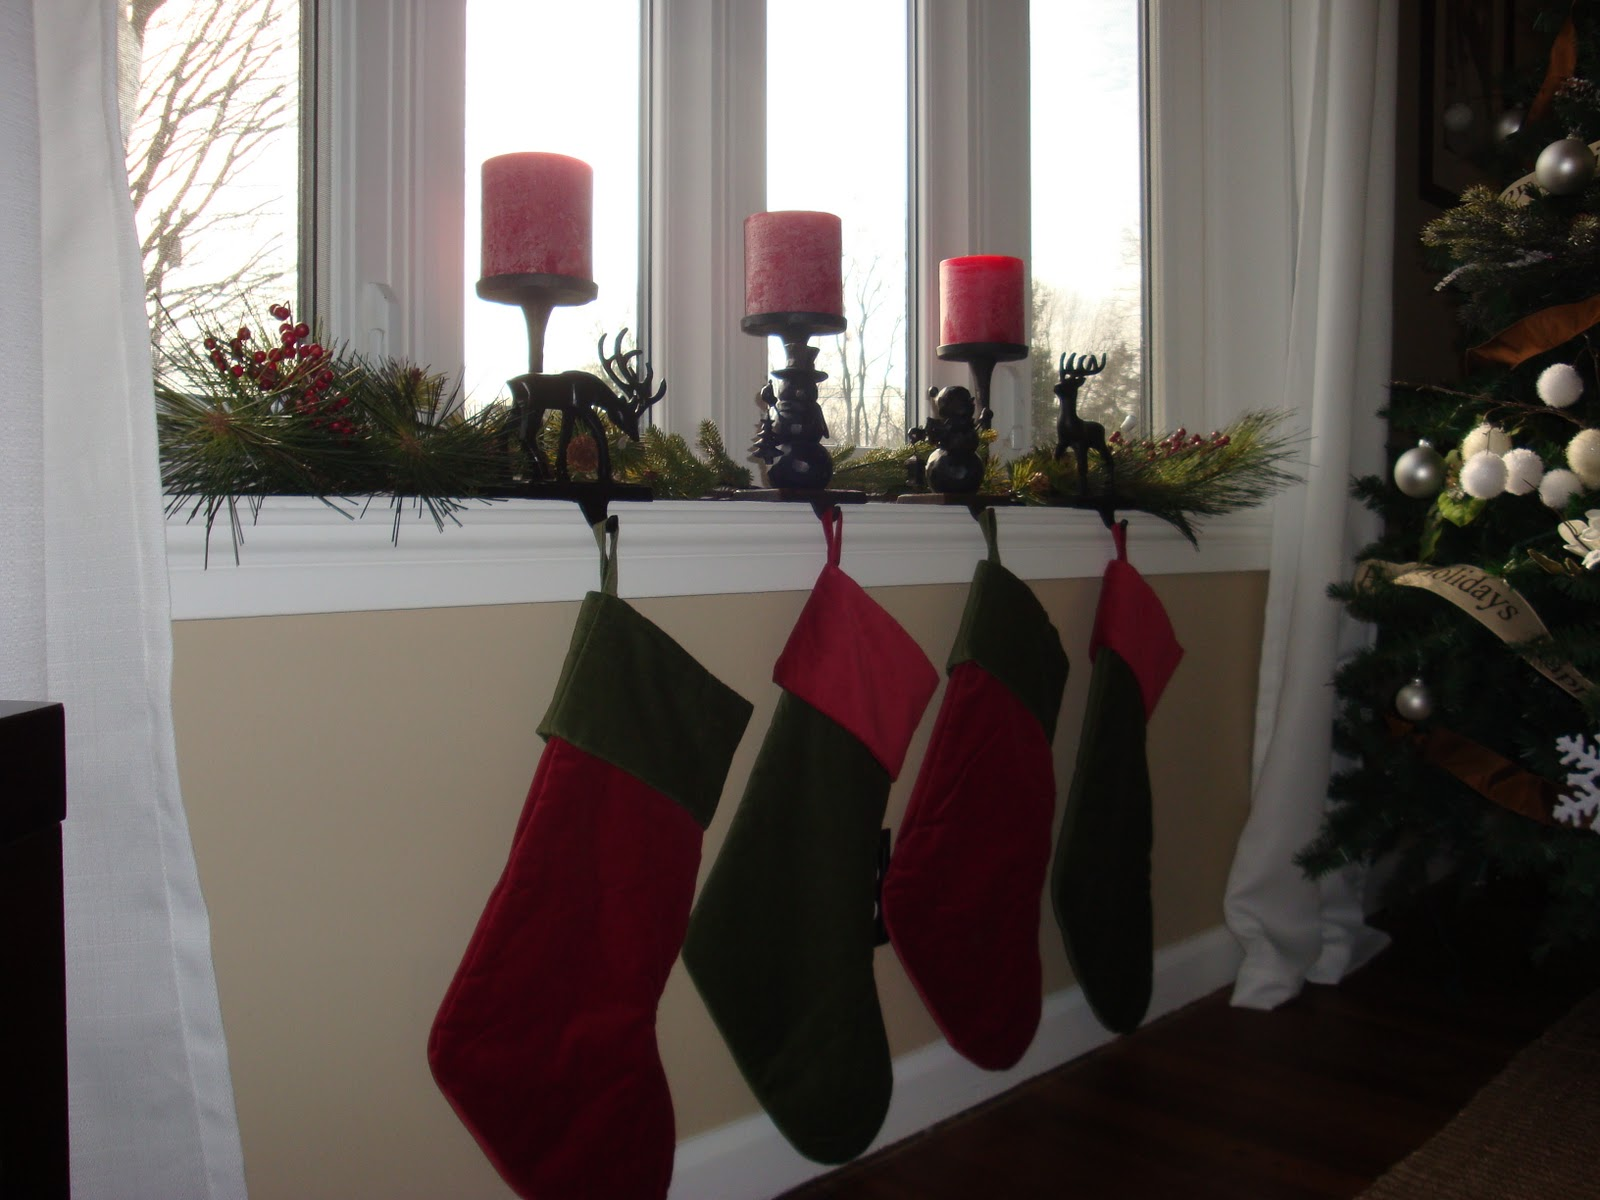 socks plants and red candle christmas decoration on window near christmas tree